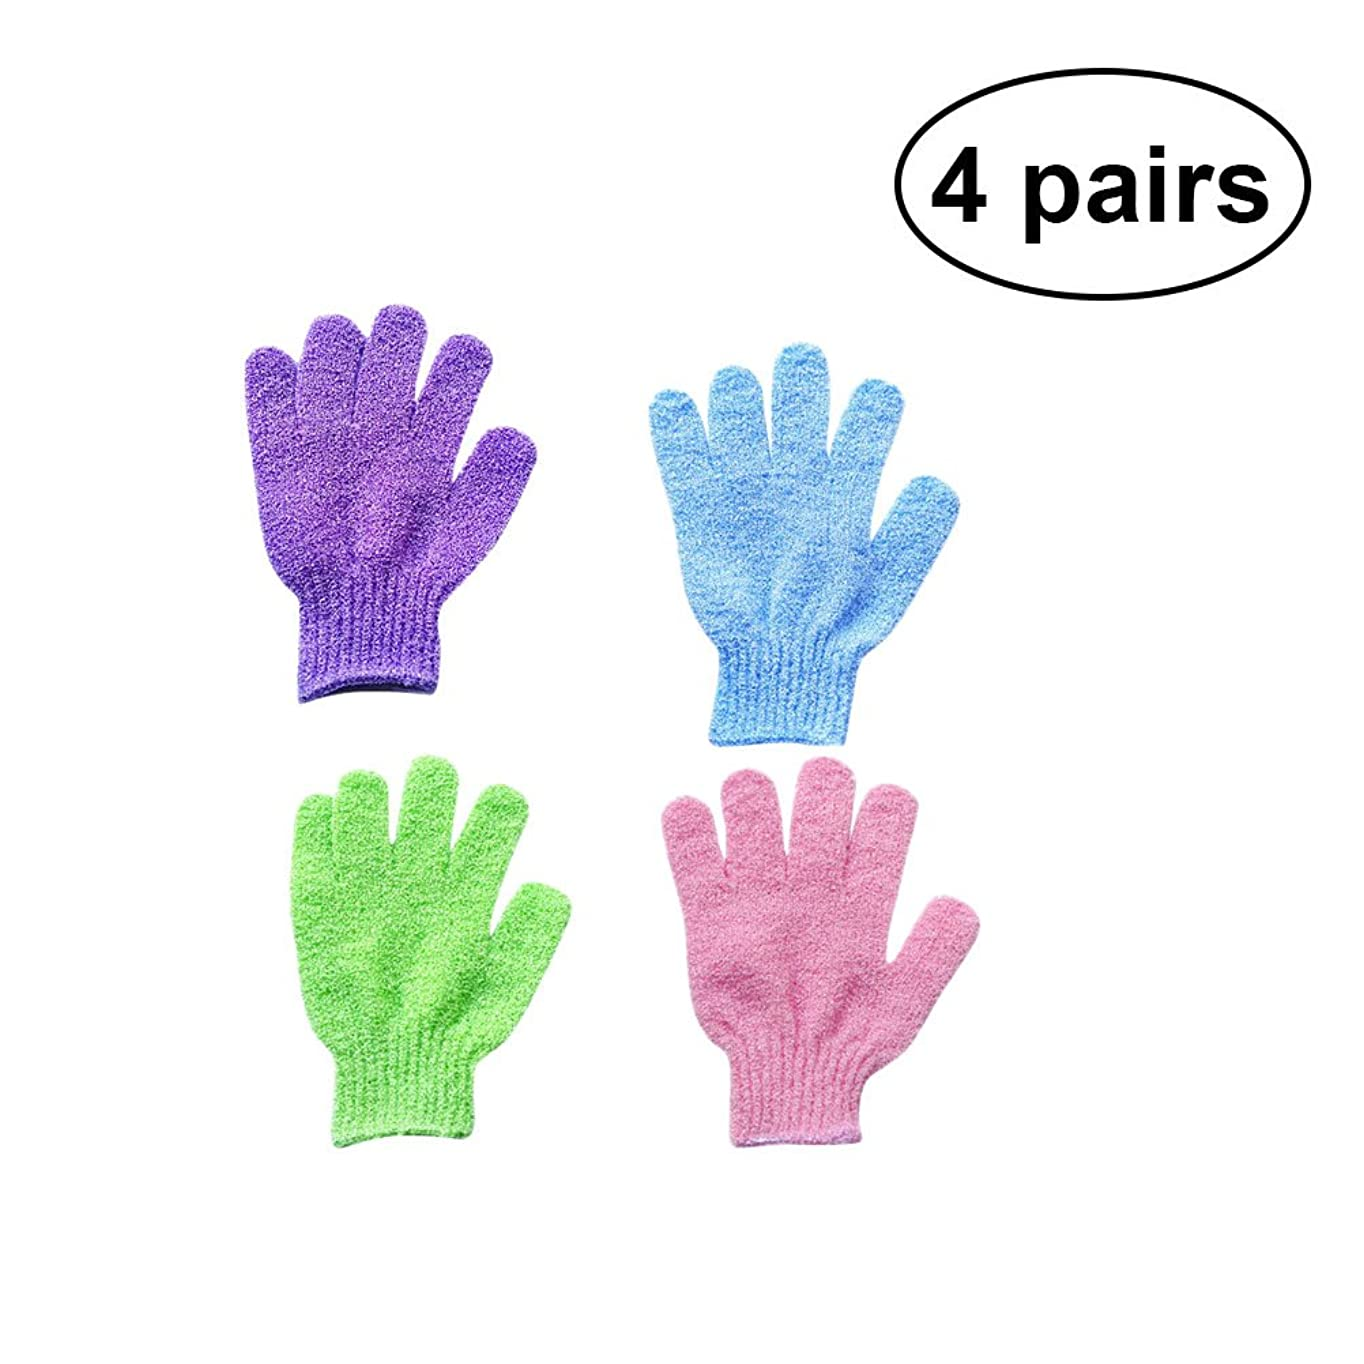 フランクワースリー南西発掘Healifty 4 Pairs Exfoliating Bath Gloves Shower Mitts Exfoliating Body Spa Massage Dead Skin Cell Remover